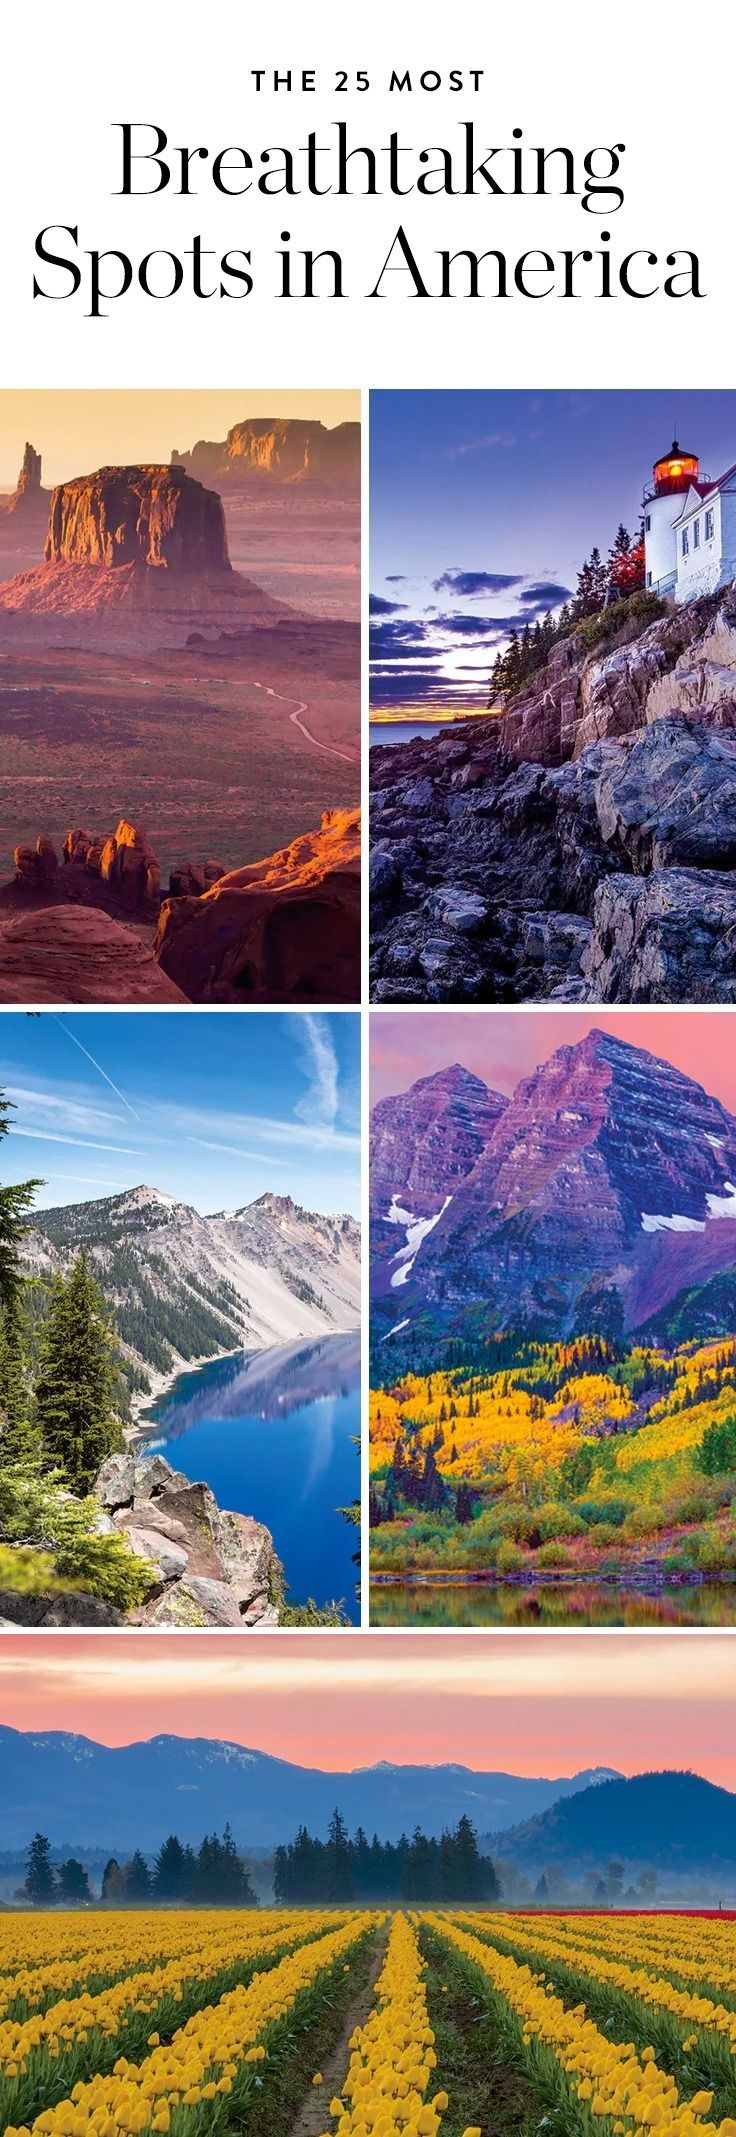 Get our your camera: From Big Sur to the Brooklyn Bridge, these are the 25 most photogenic and awe-inspiring places right here in the U.S.